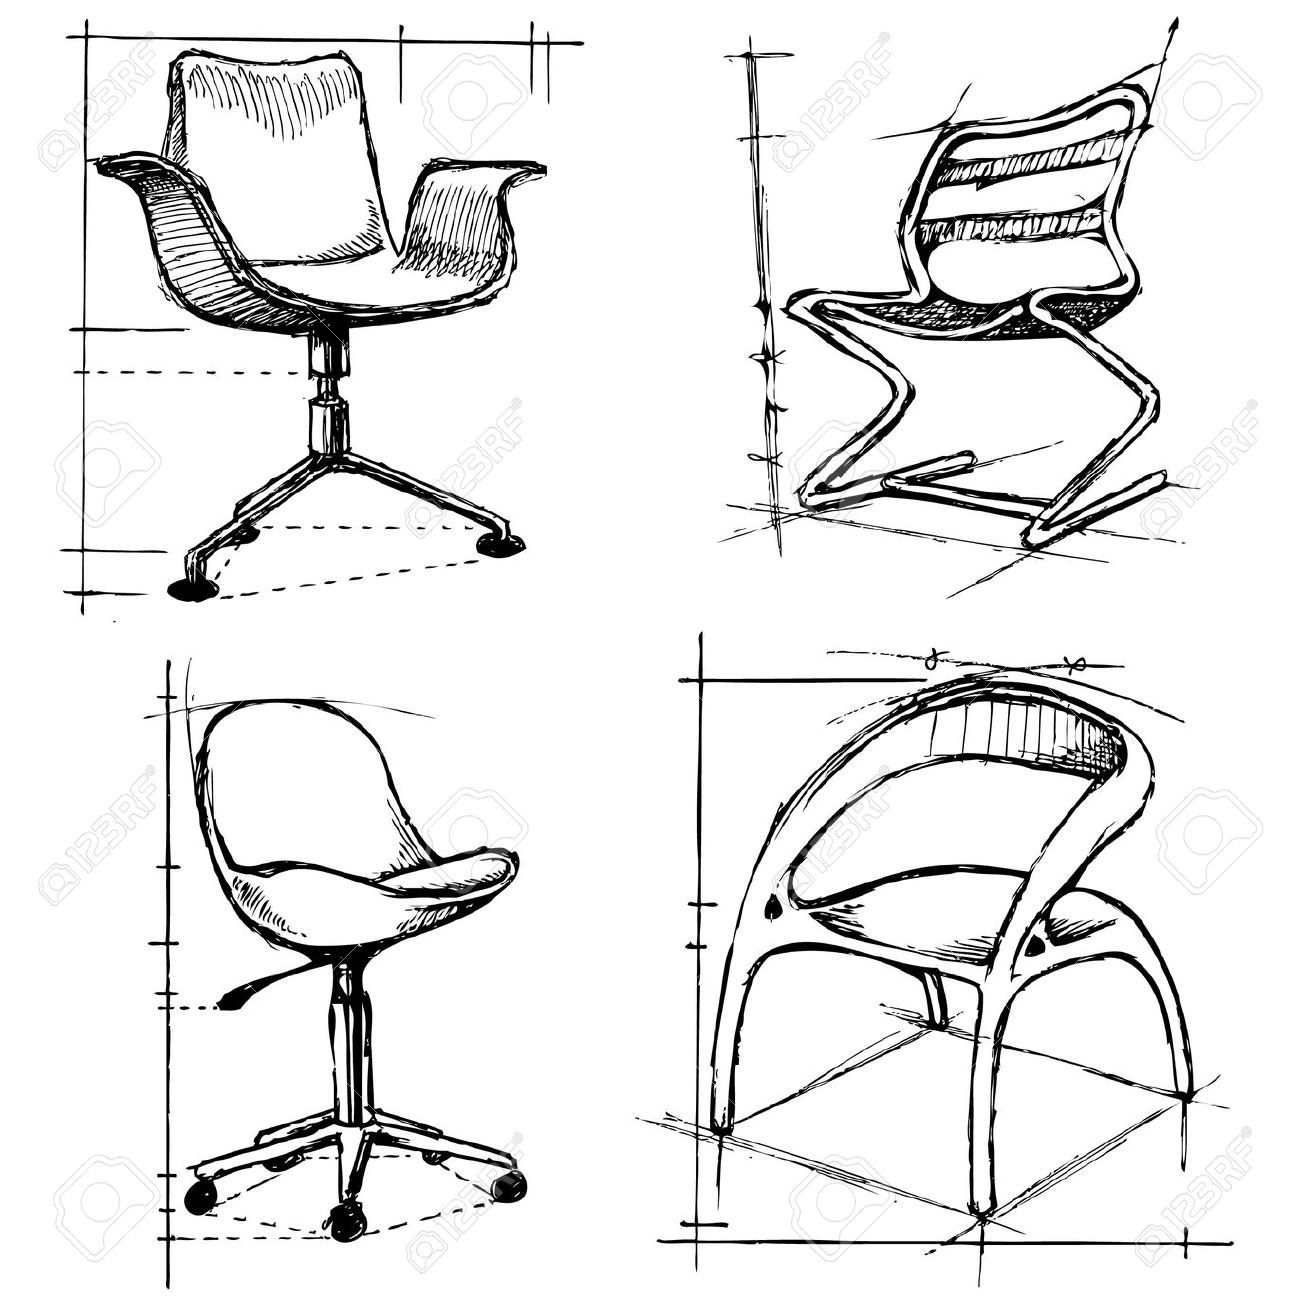 Modern furniture sketches chair sketches -  Modern Furniture Design Sketches